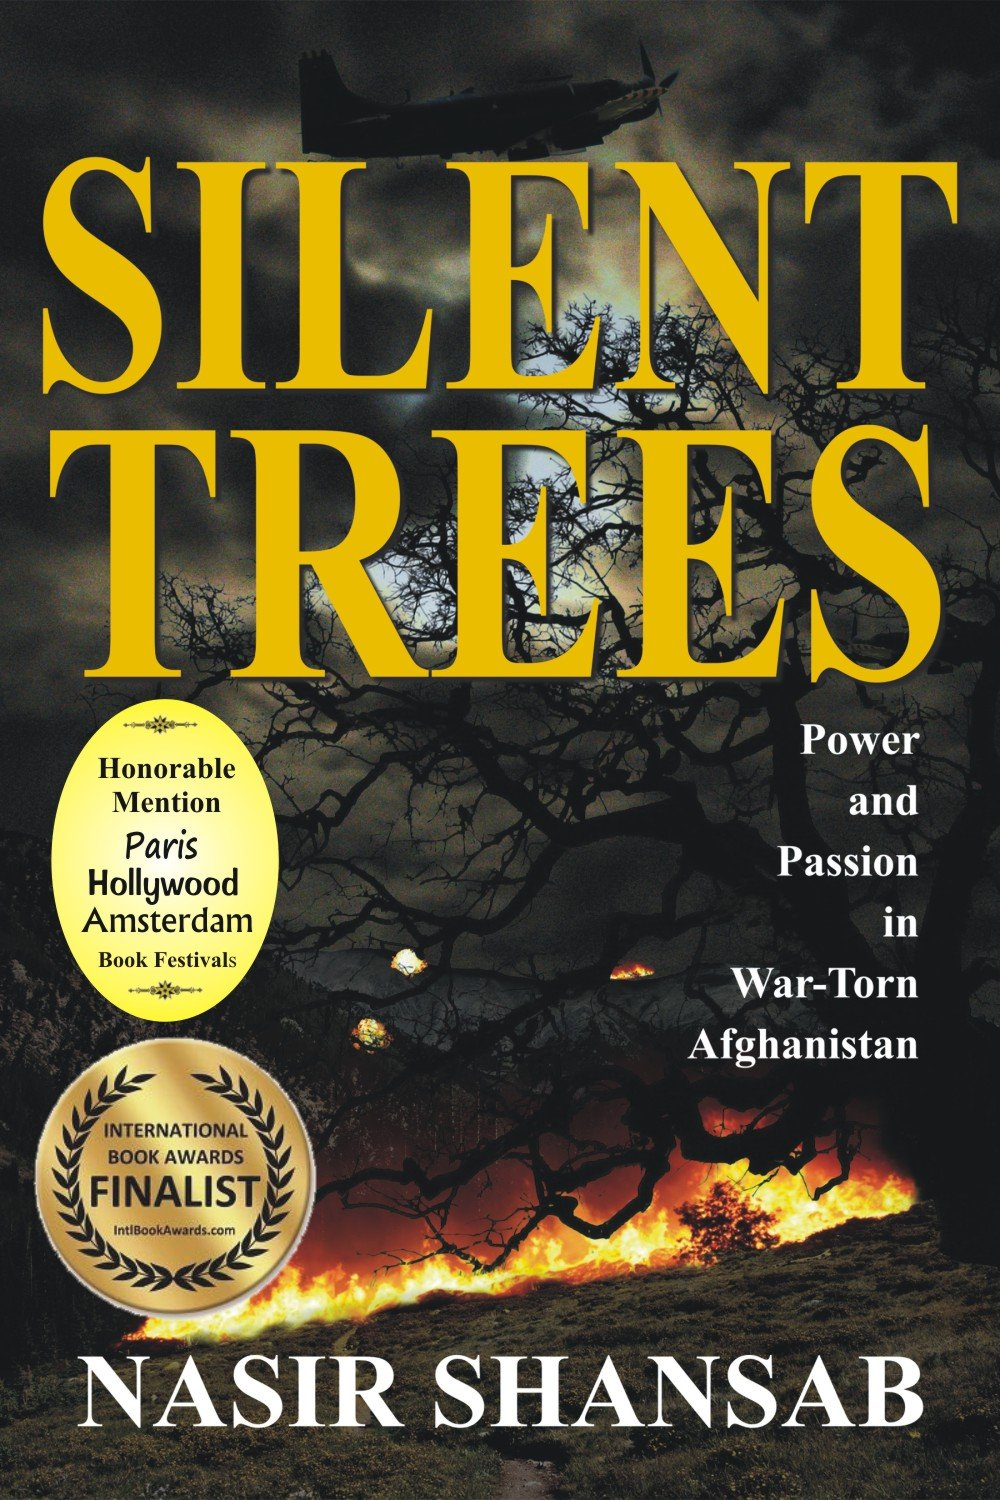 Download Silent Trees: Power and Passion in War Torn Afghanistan PDF